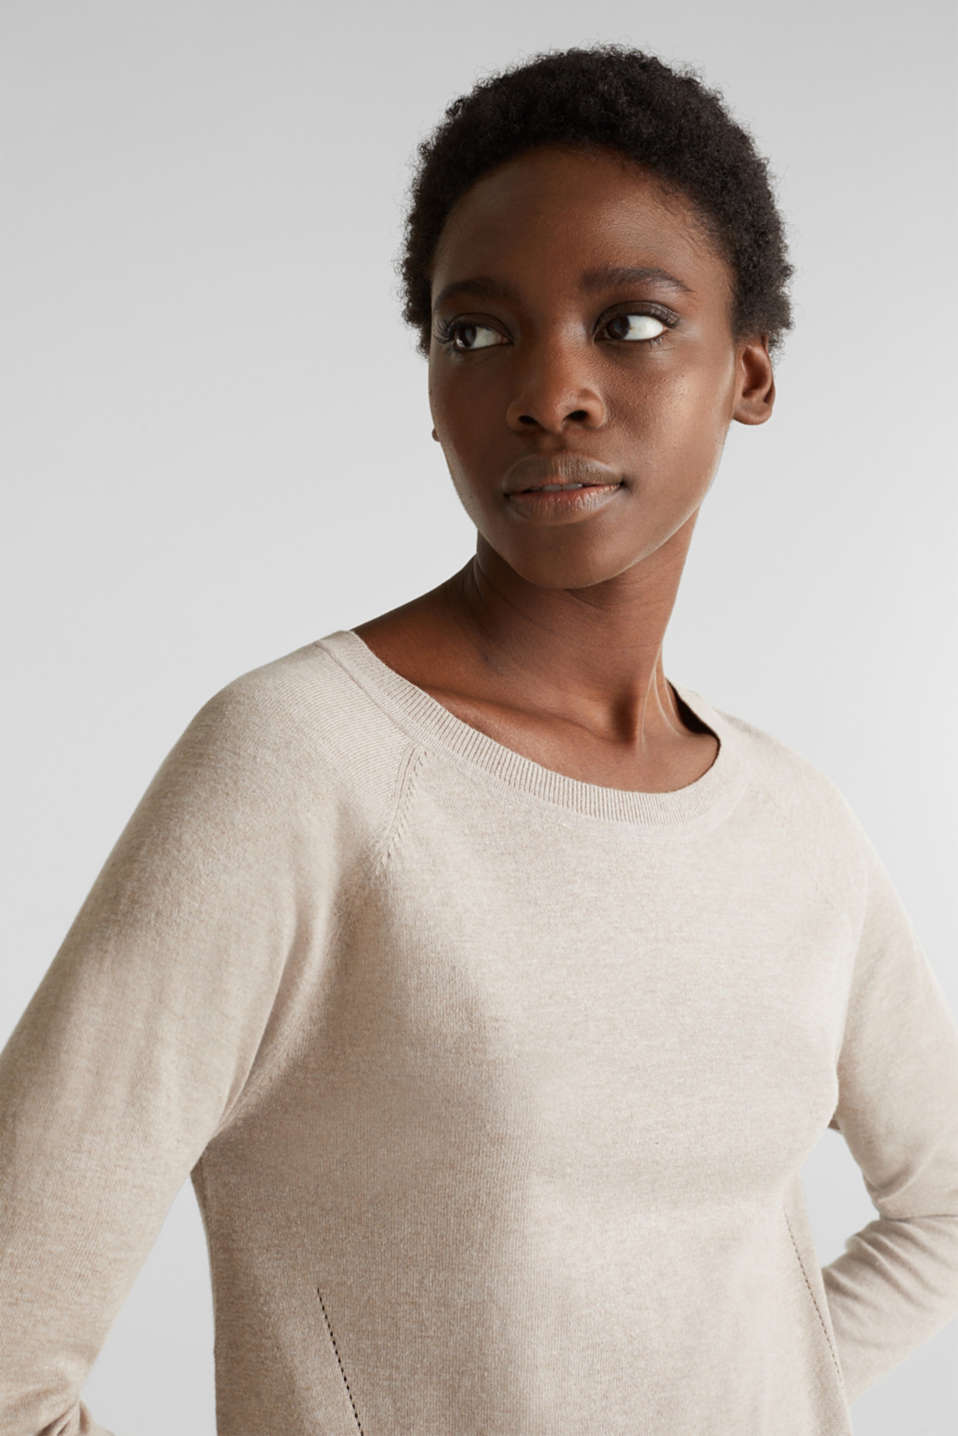 With linen: Jumper with open-work patterned details, BEIGE 5, detail image number 5